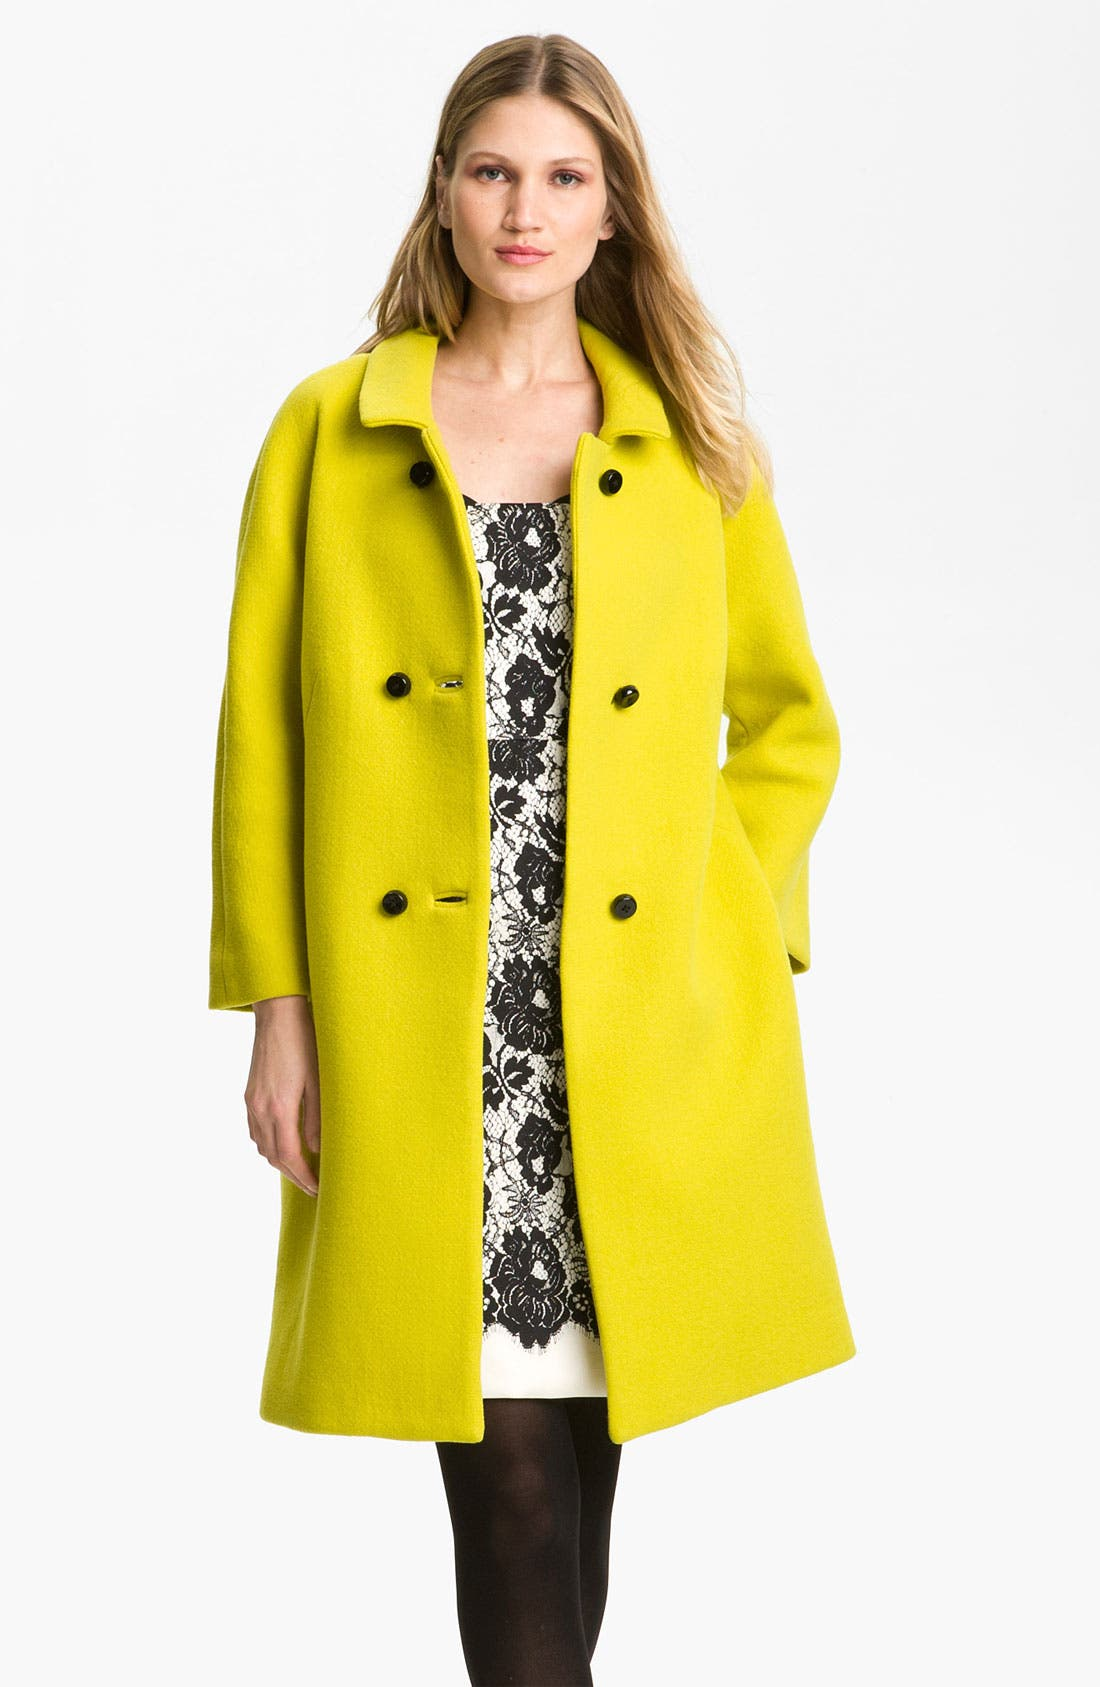 Alternate Image 1 Selected - Milly 'Alexis' Wool Blend Coat